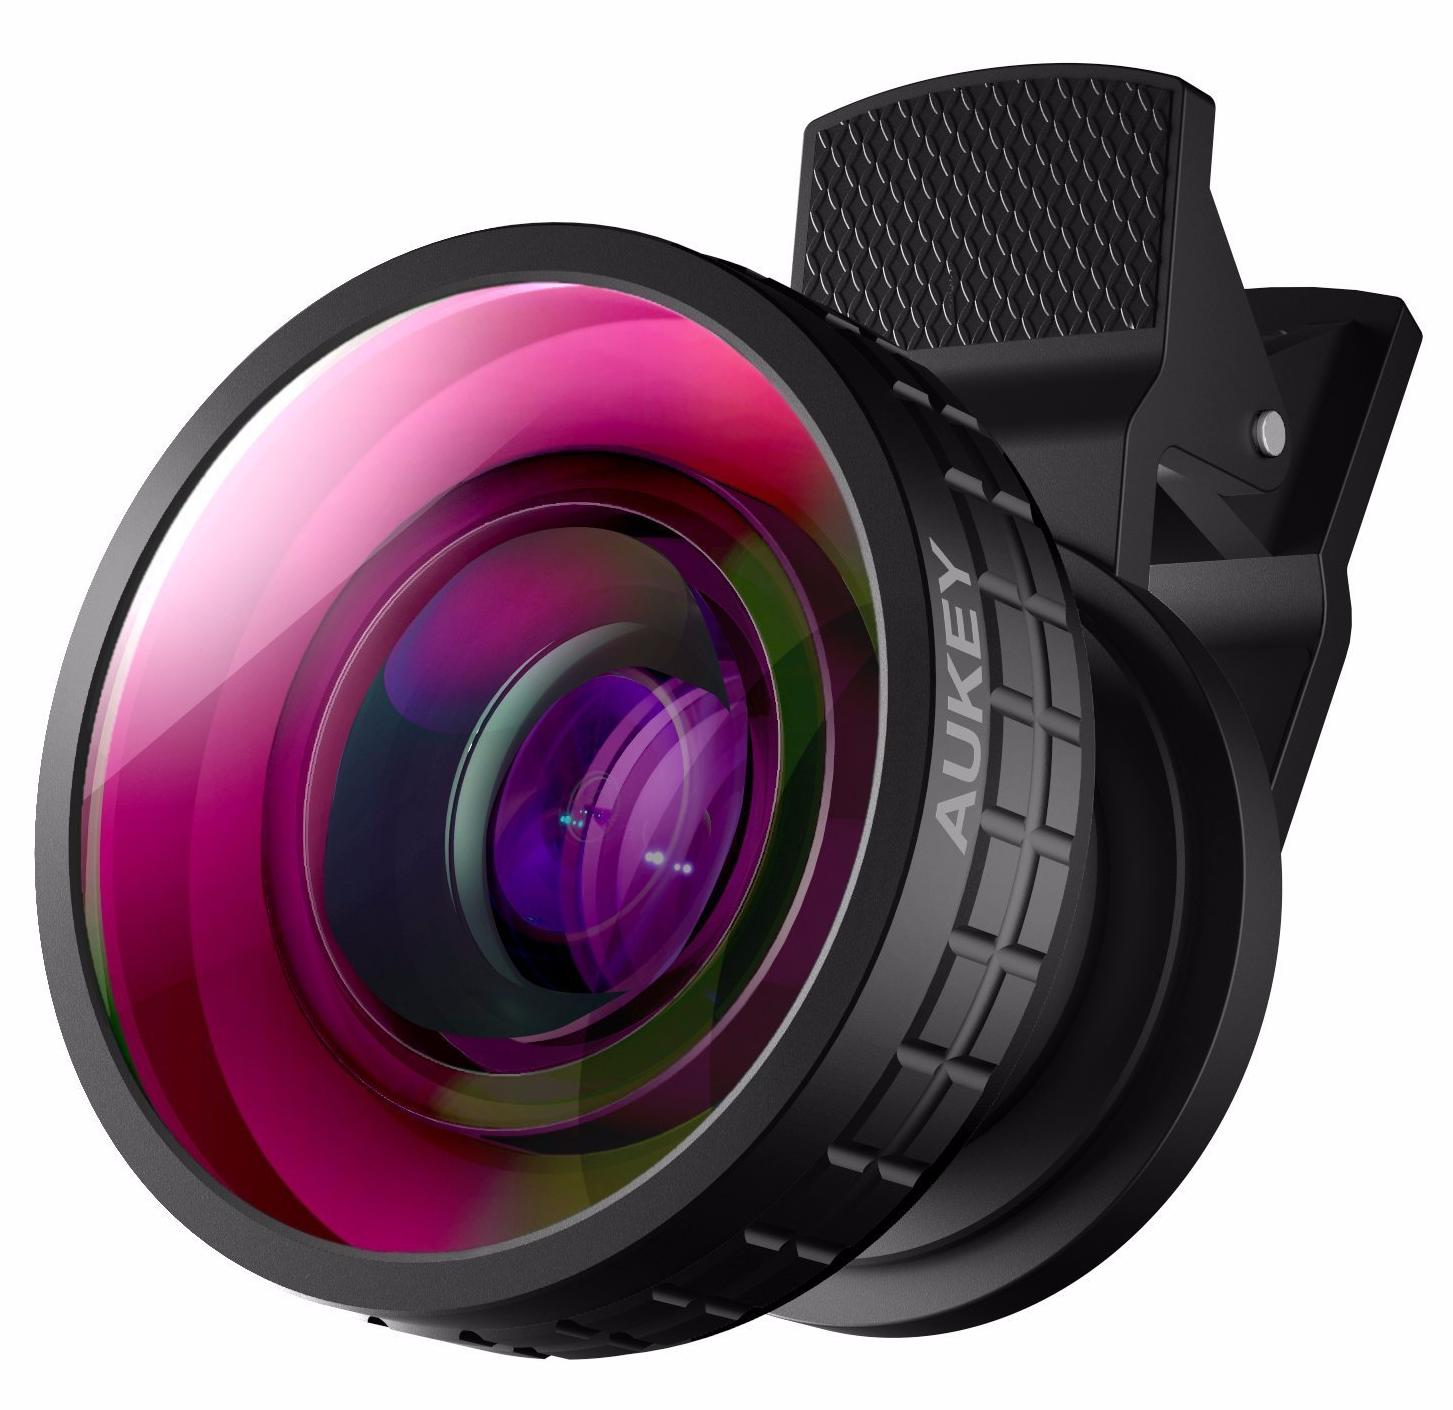 Ora pickogen he 077 uv fisheye macro wide angle camera lens with led for iphone samsung pink